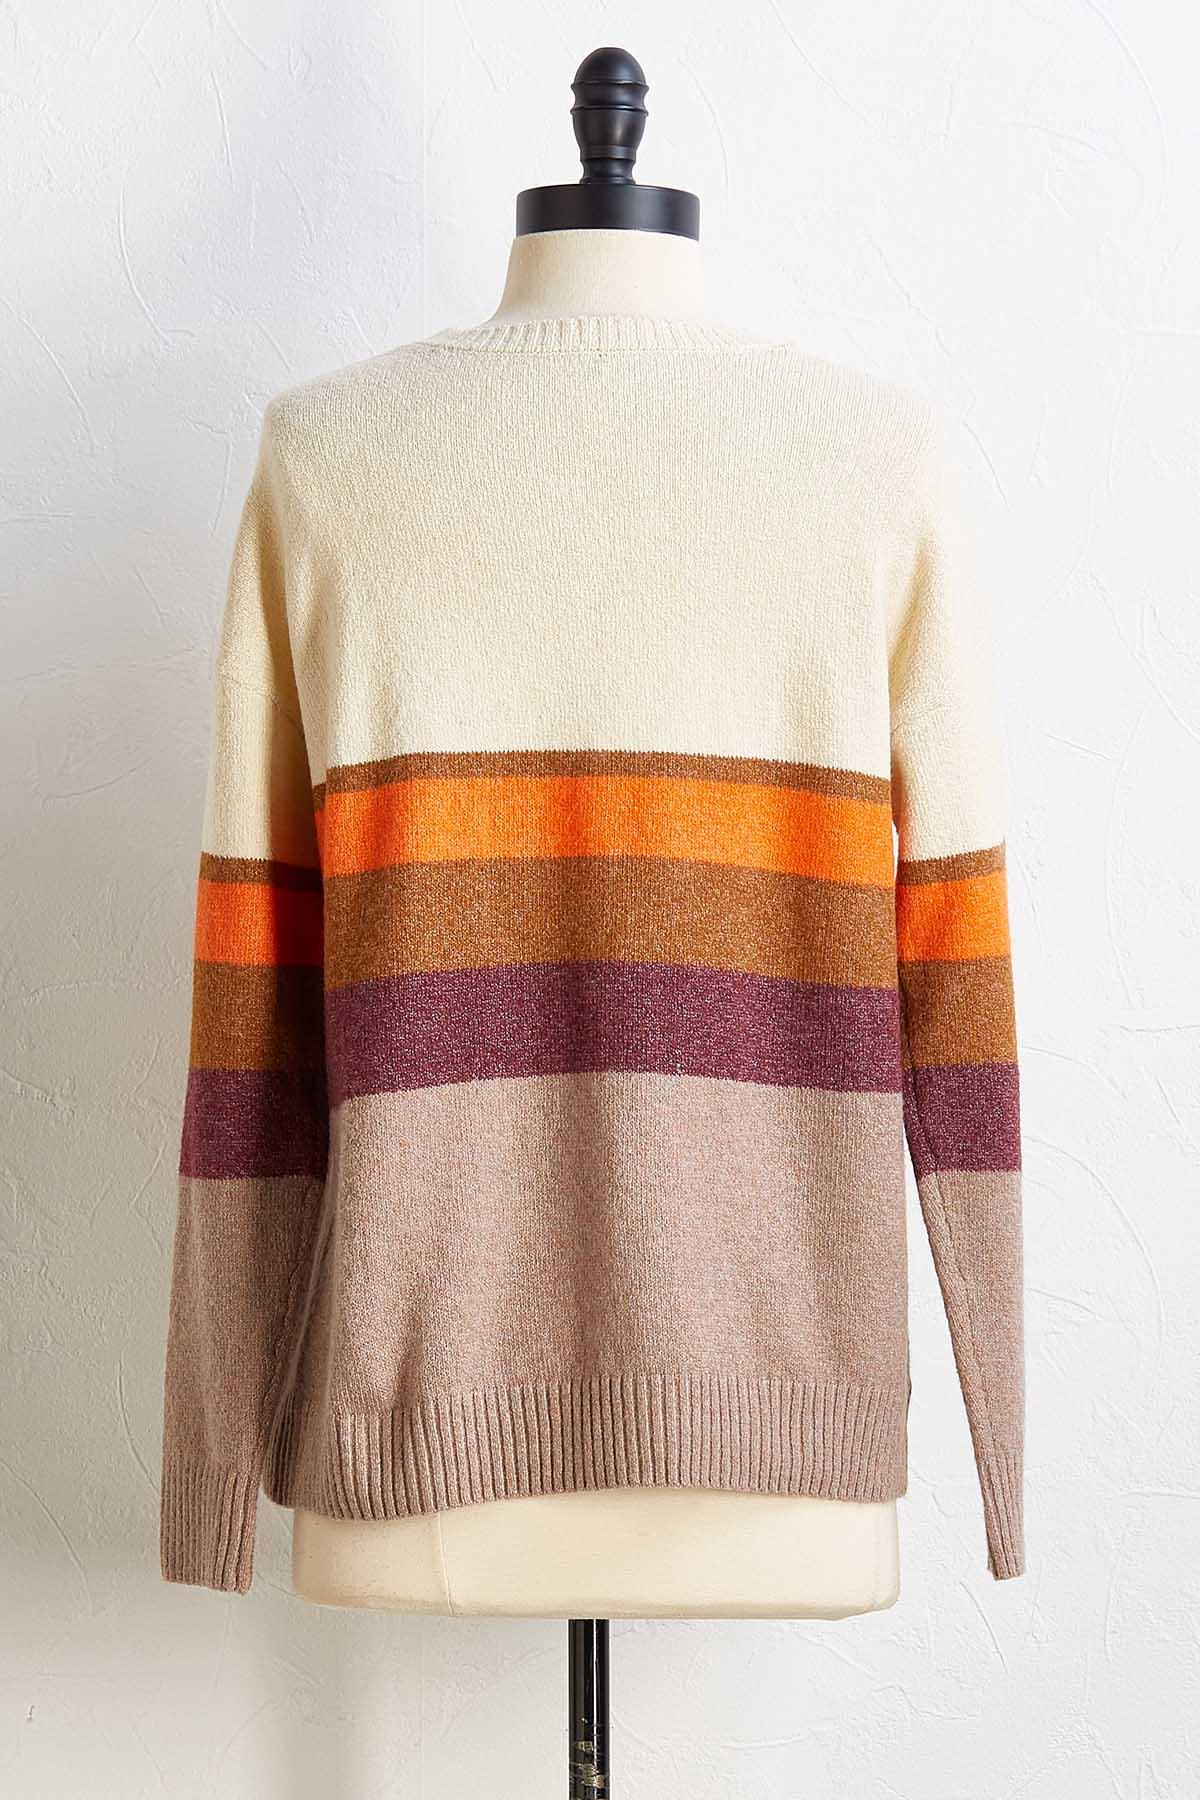 Autumn Sunset Sweater